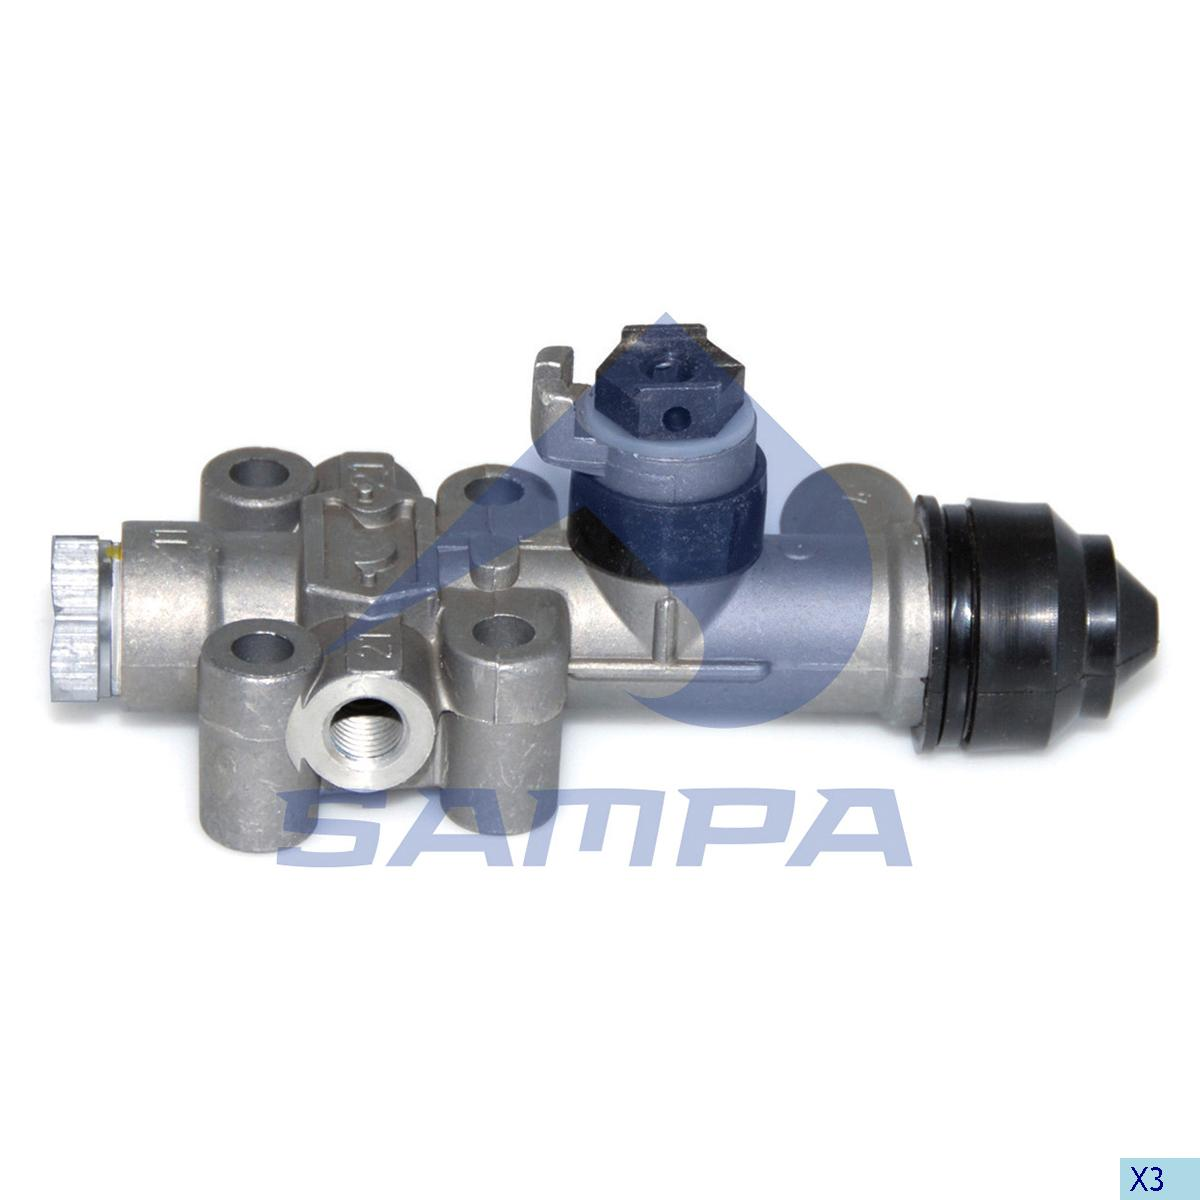 Levelling Valve, Neoplan, Compressed Air System